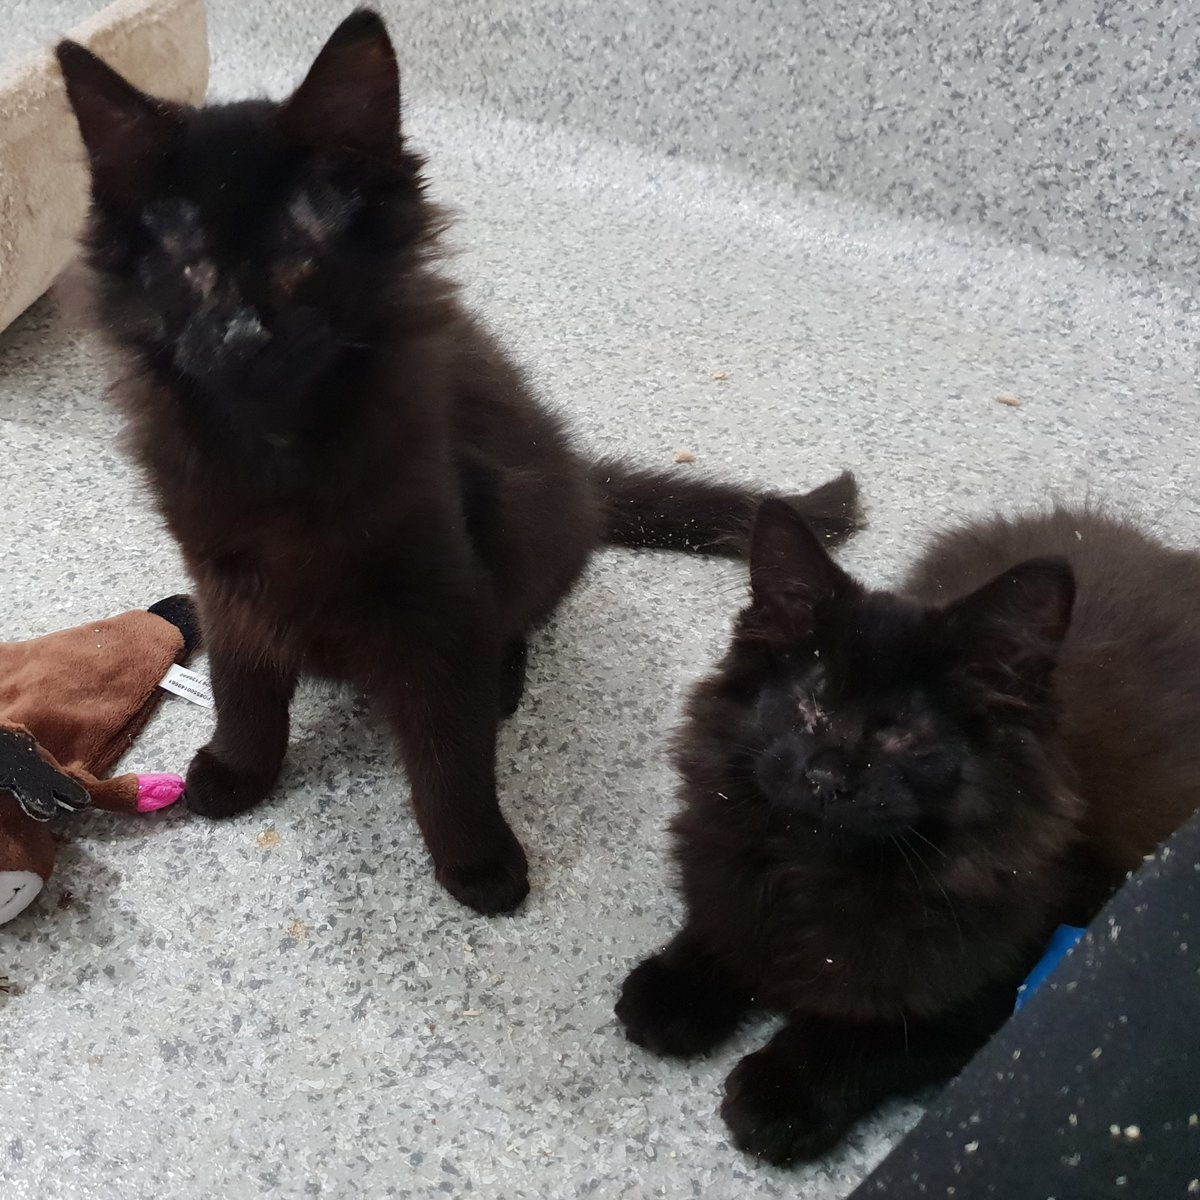 This #WorldSightDay we&#39;re appealing for a special home for blind kittens Marrok and Rodolfo @CatsSouthLondon now they&#39;ve recovered from eye surgery. Read more about them at  https:// mitcham.cats.org.uk/mitcham/adopt- a-cat &nbsp; … <br>http://pic.twitter.com/wgMBN33rCR